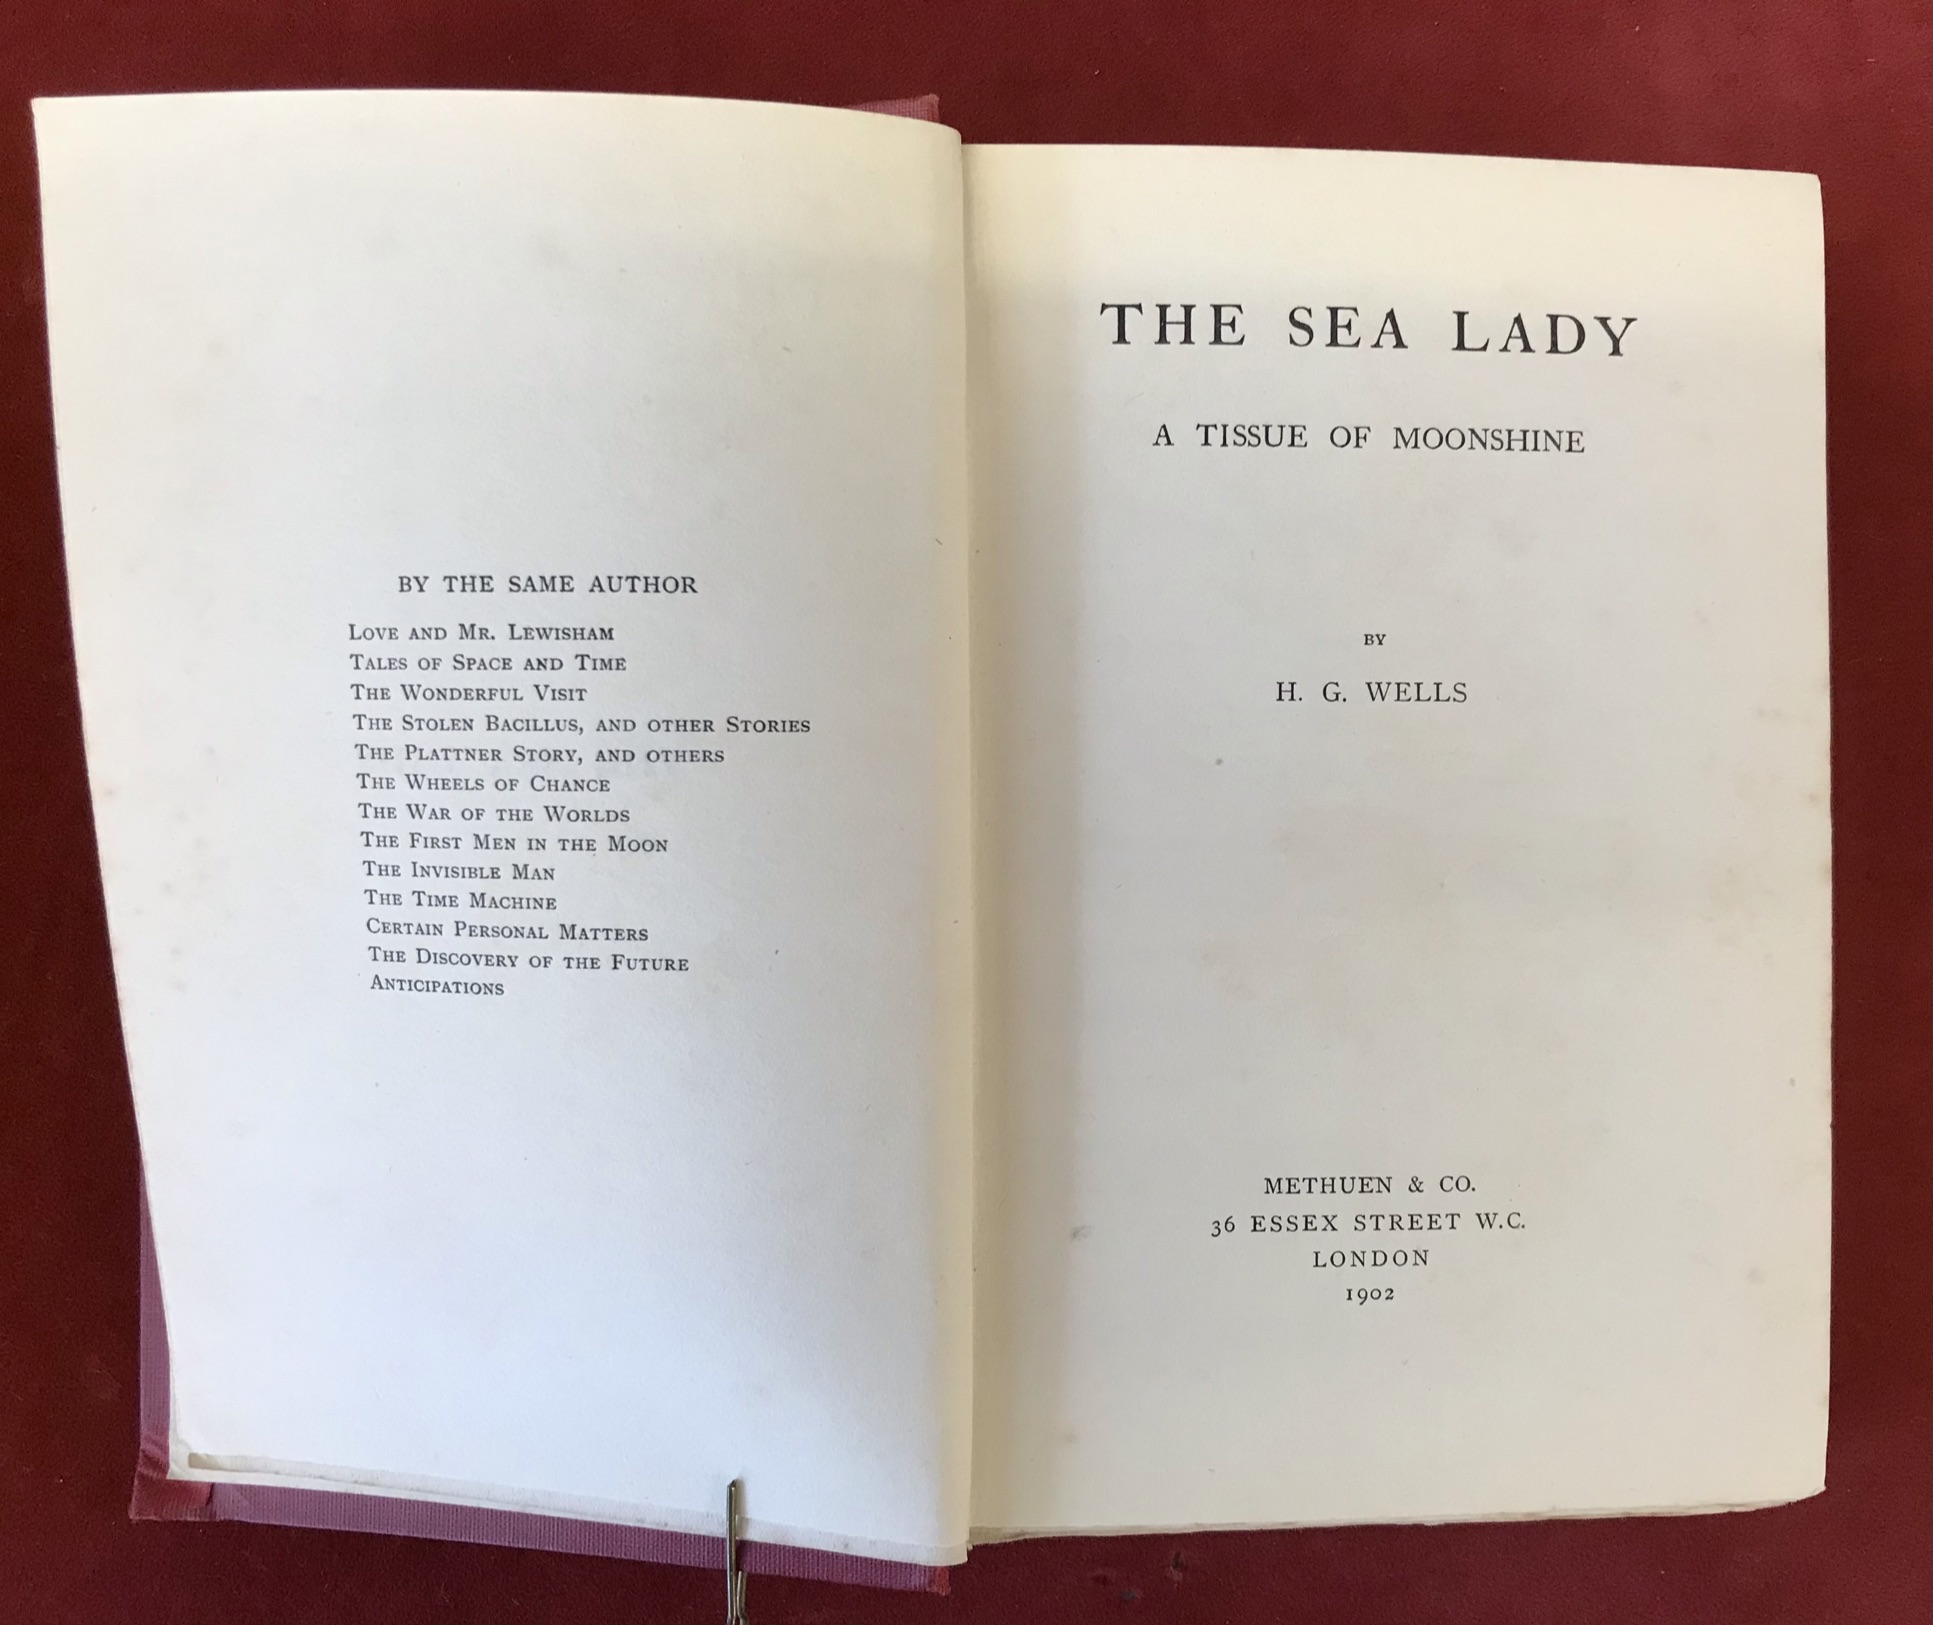 The Sea Ladyby H.G. Wells, First edition, 'later issue' 1902 - Image 3 of 3